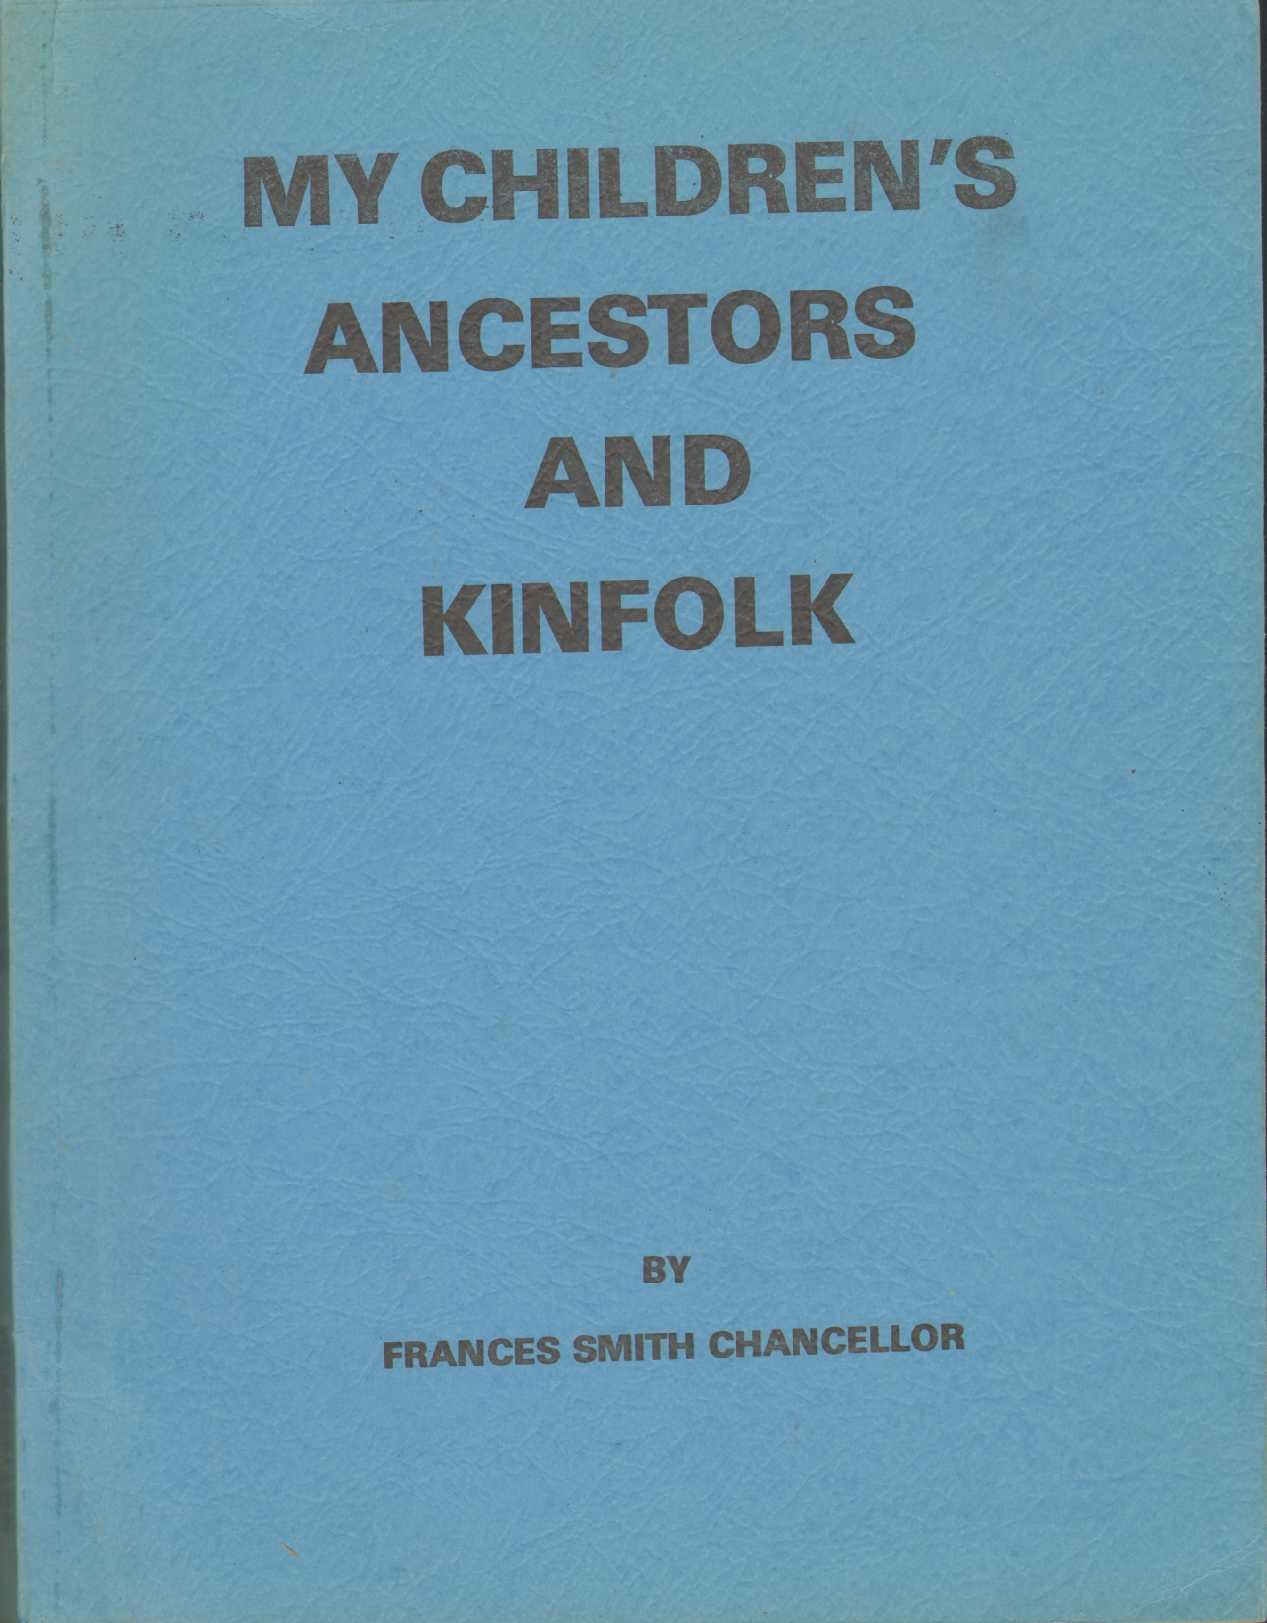 Image for MY CHILDREN'S ANCESTORS AND KINFOLK